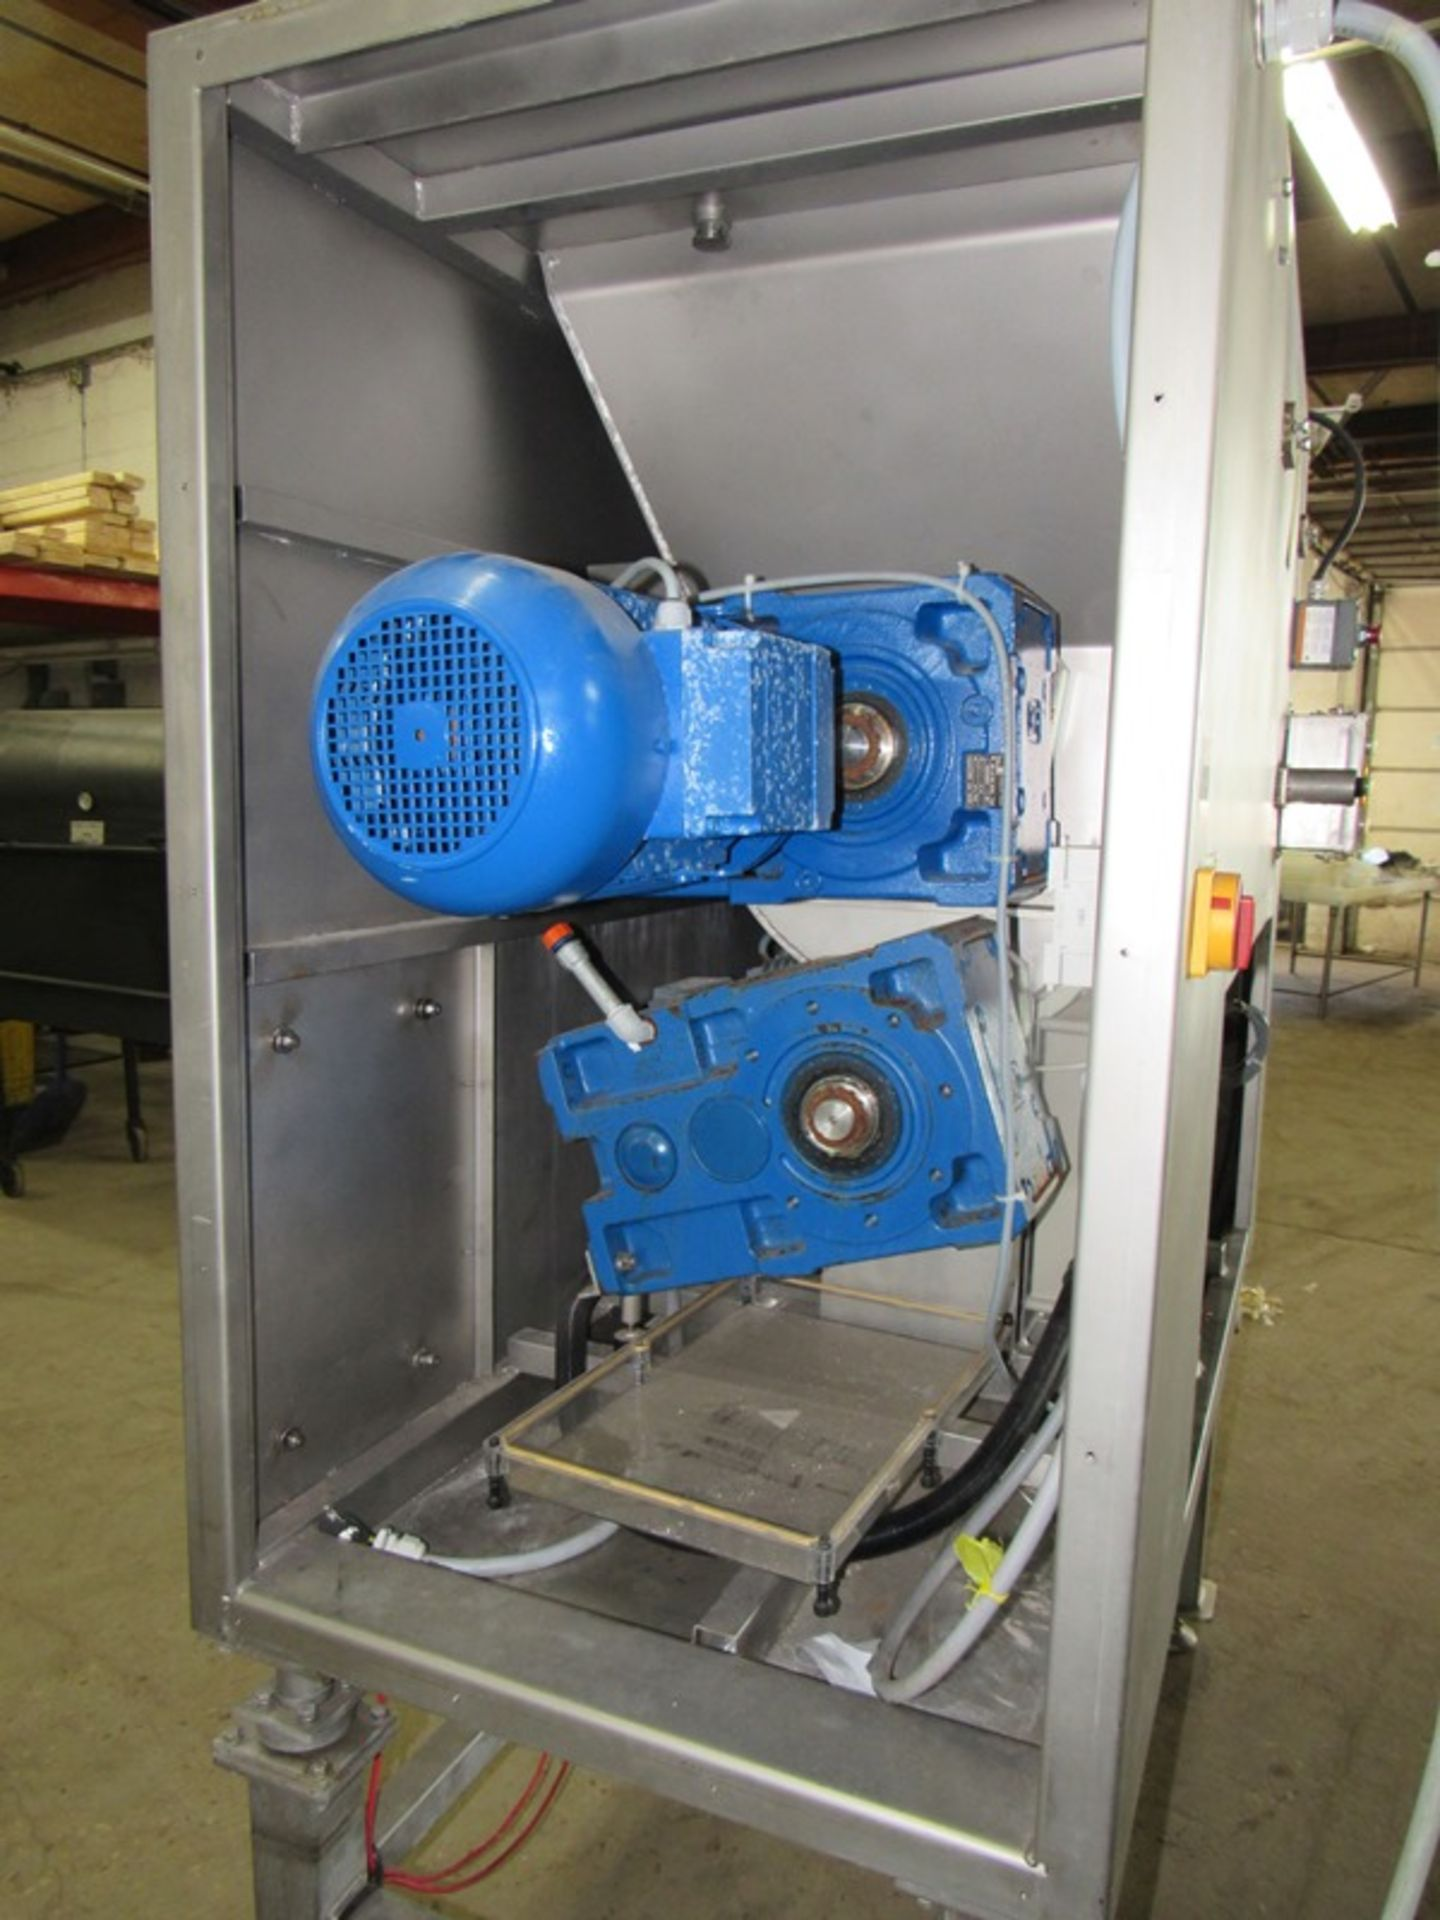 """Lot 31 - Hollymatic Mdl.; 4300 Mixer/Grinder, 6"""" head, on load cells, (no scale), with auger,missing ring,"""